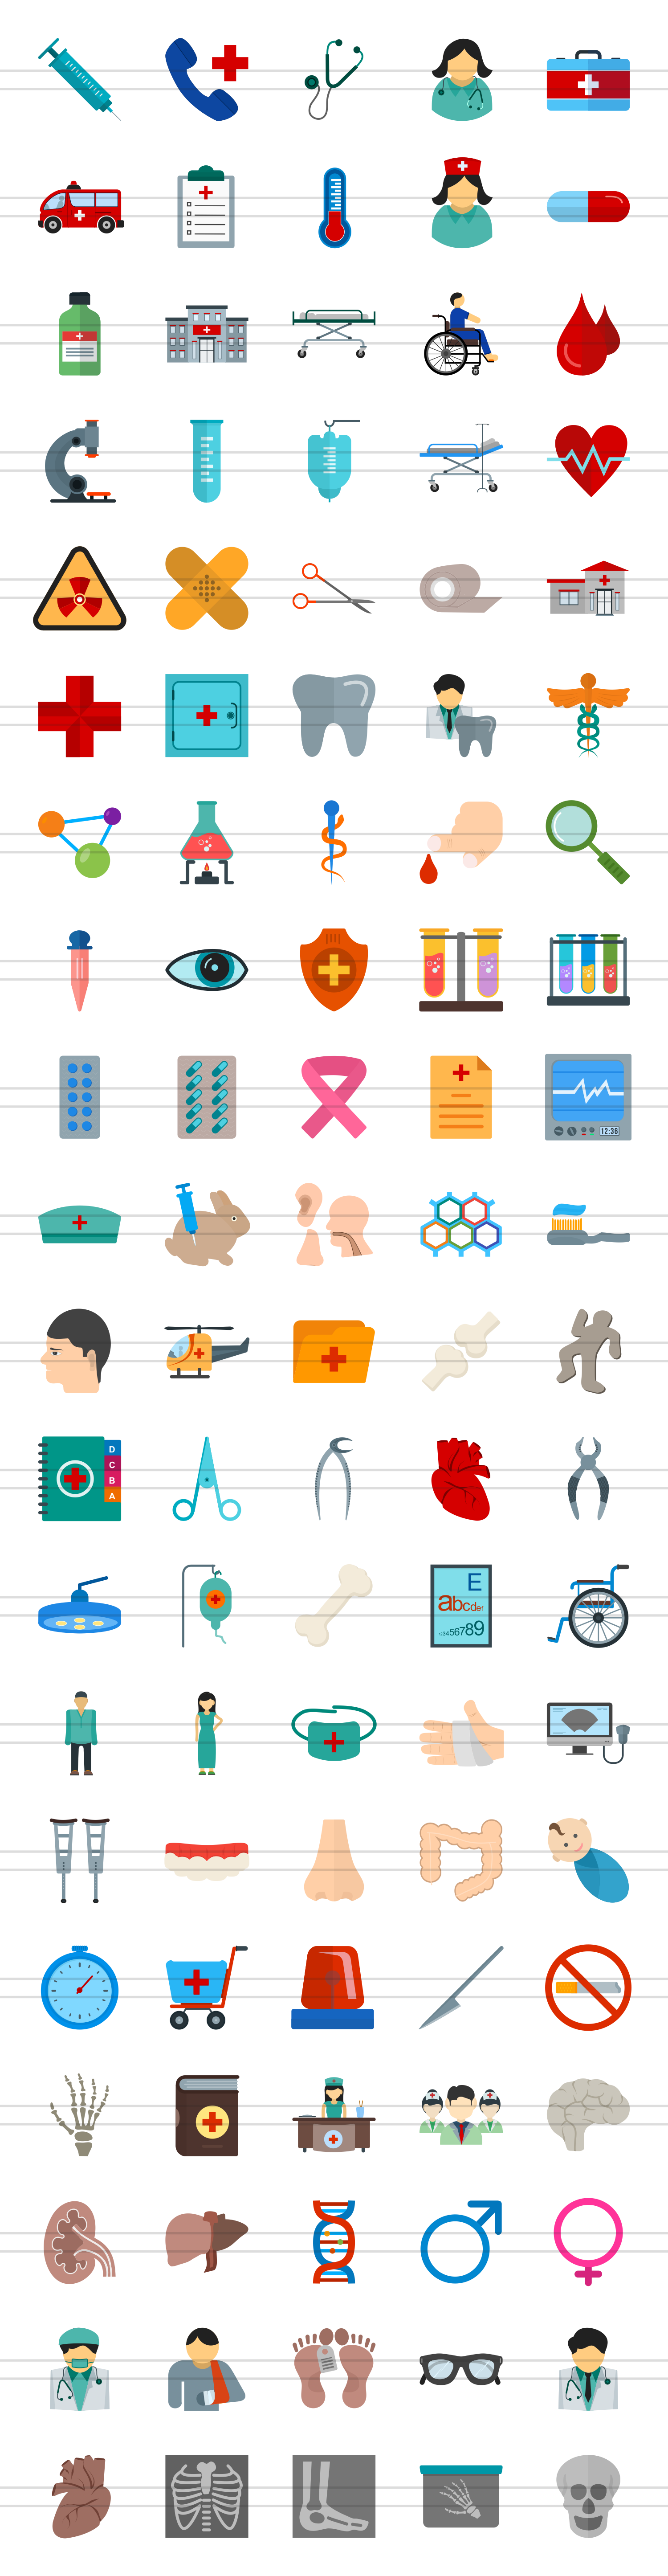 100 Medical General Flat Icons example image 2